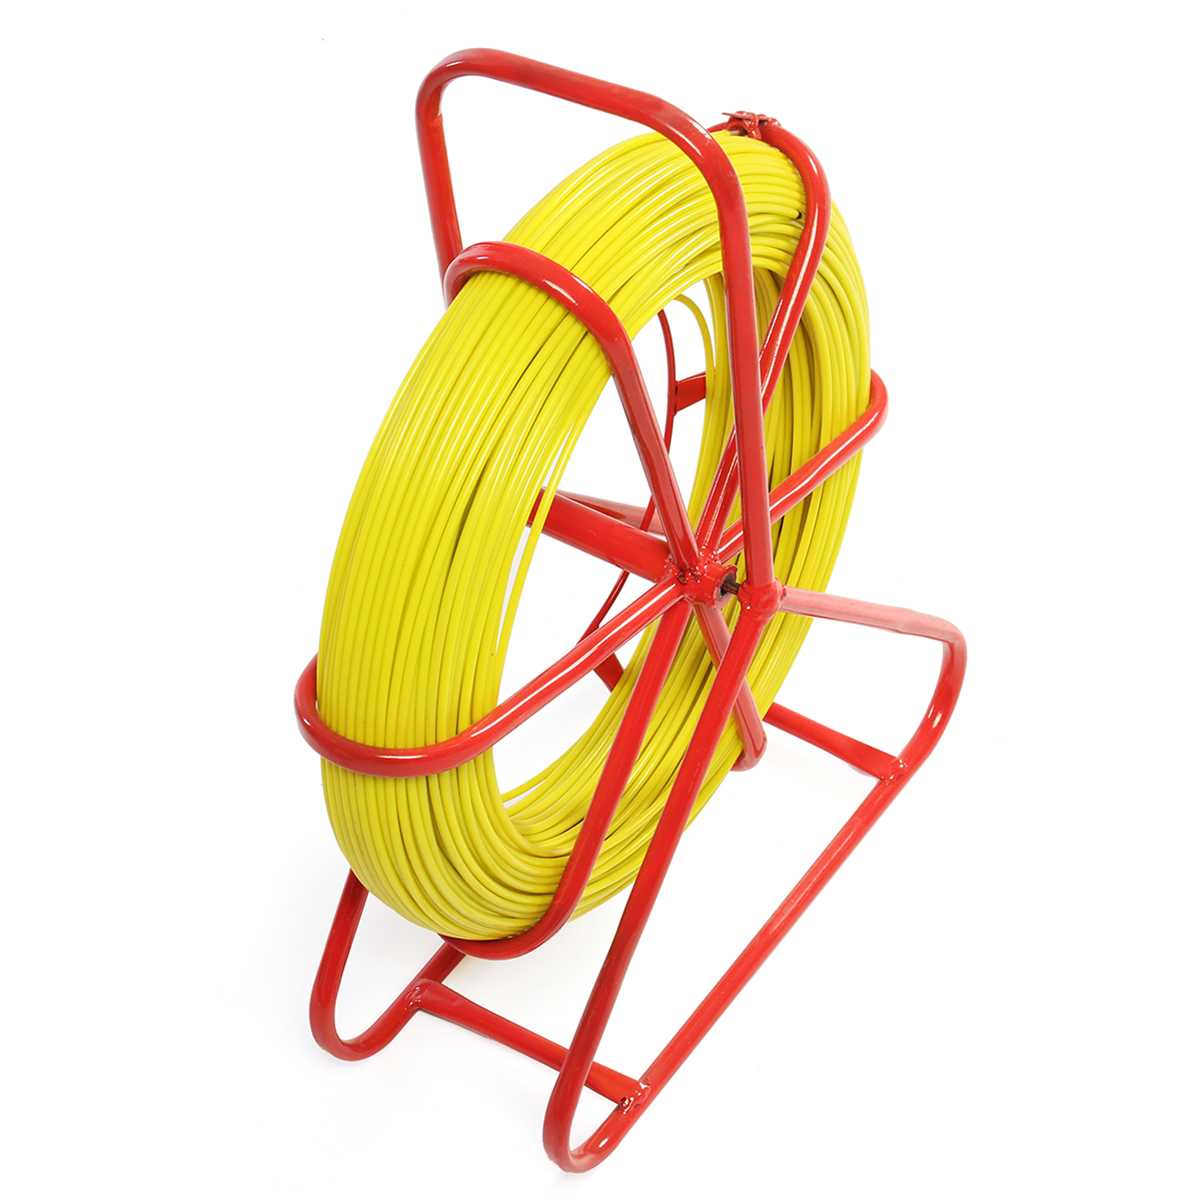 Fish Tape Fiberglass Pulling Cable Wire Running Tube Rod Duct Puller Tool 4.5mmX150m 6mm*180m 9mm*150m